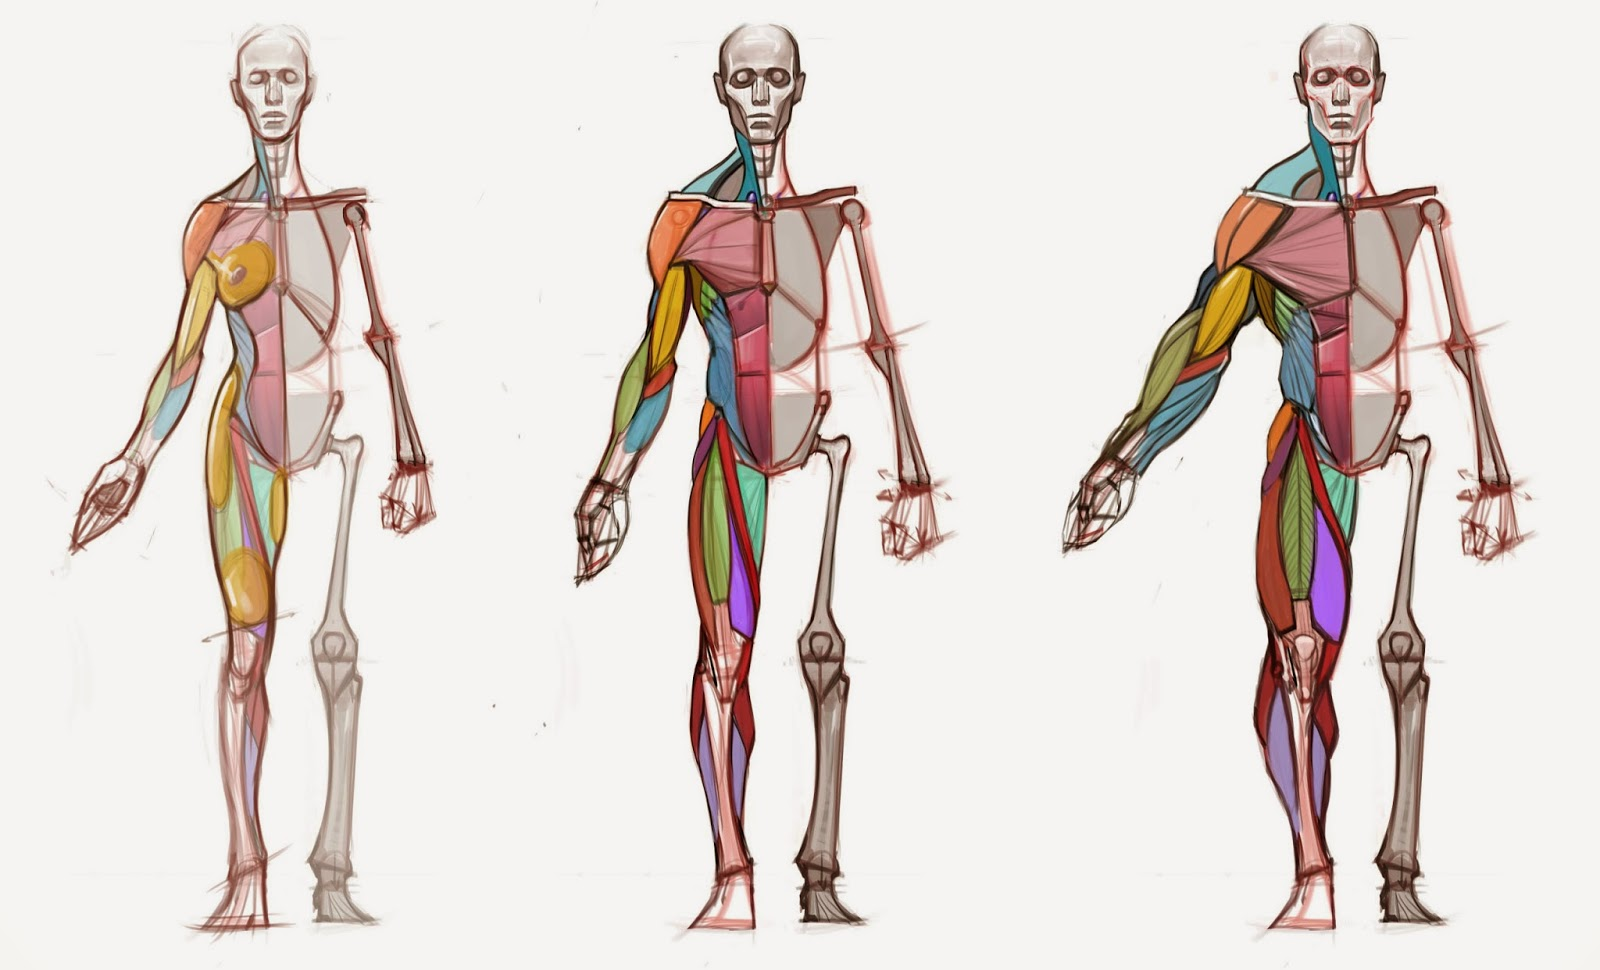 Figuredrawingfo news body type diagram here is a diagram i made for a lecture on body typegender variations in my anatomy class the goal was to understand how skeletal muscle ccuart Image collections